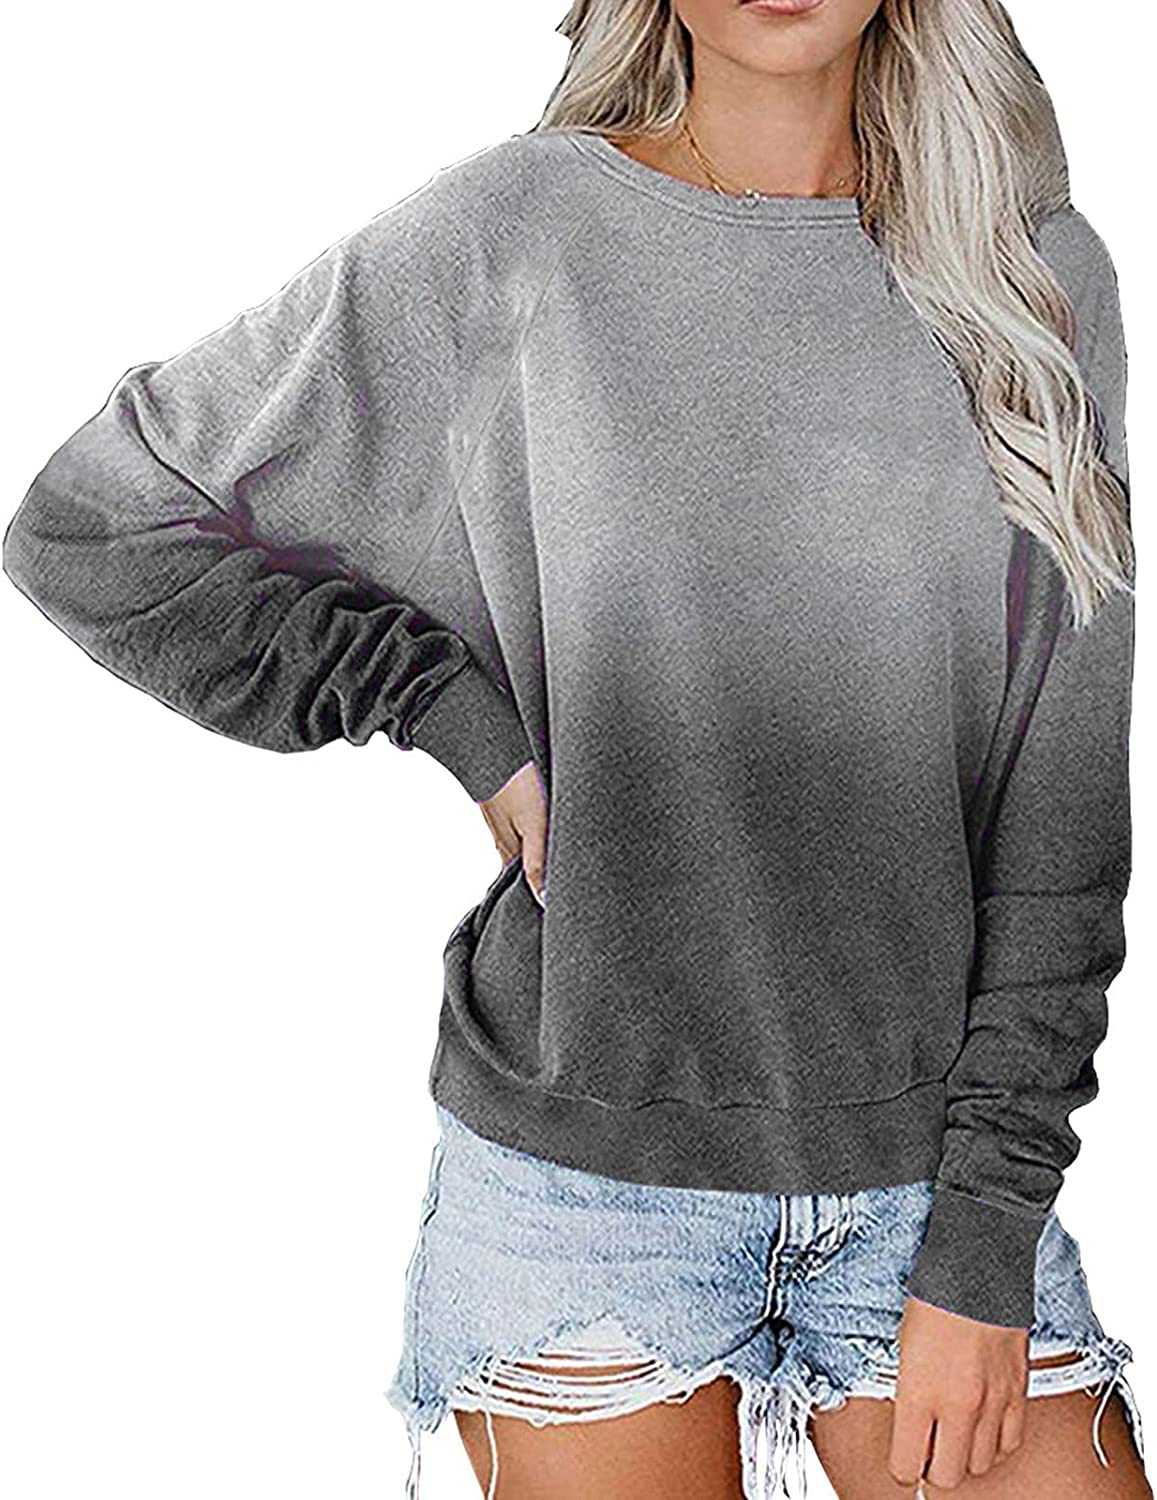 Women's Gradient Print Sweatshirt Fashion Long Sleeve O-Neck Loose Casual Pullover Shirt Tops Sports Outdoor Blouse